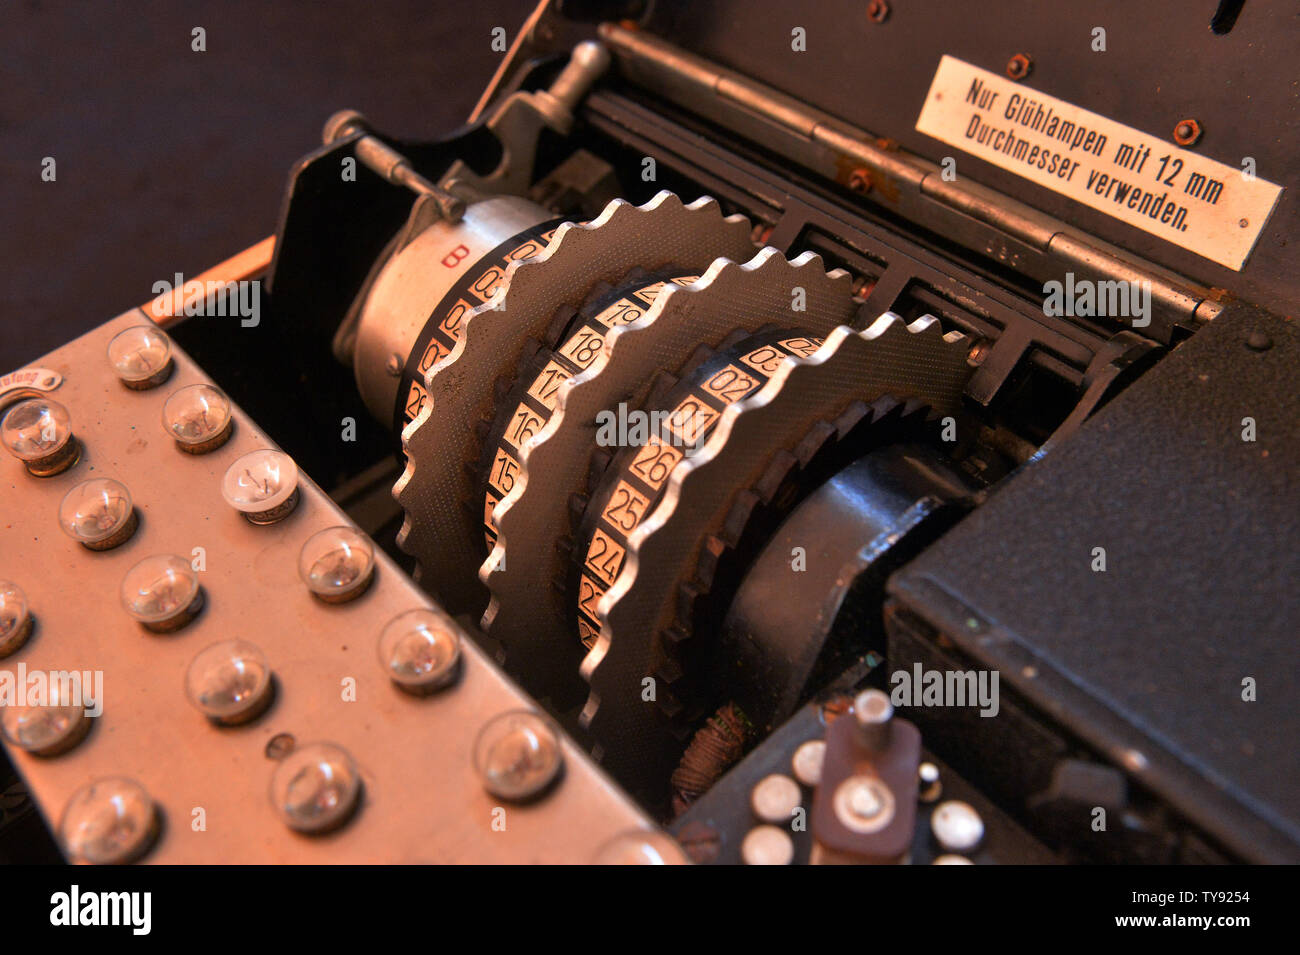 A rare three-cipher rotor design Enigma machine (M3) used by the Germans during World War II (pictured) will be auctioned online on May 30, 2019. Germany used the Enigma machine from 1934 until the conclusion of the war in 1945. The Enigma machine could scramble the letters into any one of 17,576 combinations except the use of its original letter. As featured in the critically acclaimed film ''The Imitation Game,'' British scientist Alan Turing's efforts to decode the enigma system allowed the Allies to deconstruct many of the German ciphers' coded communications. Enigma machines are now very Stock Photo